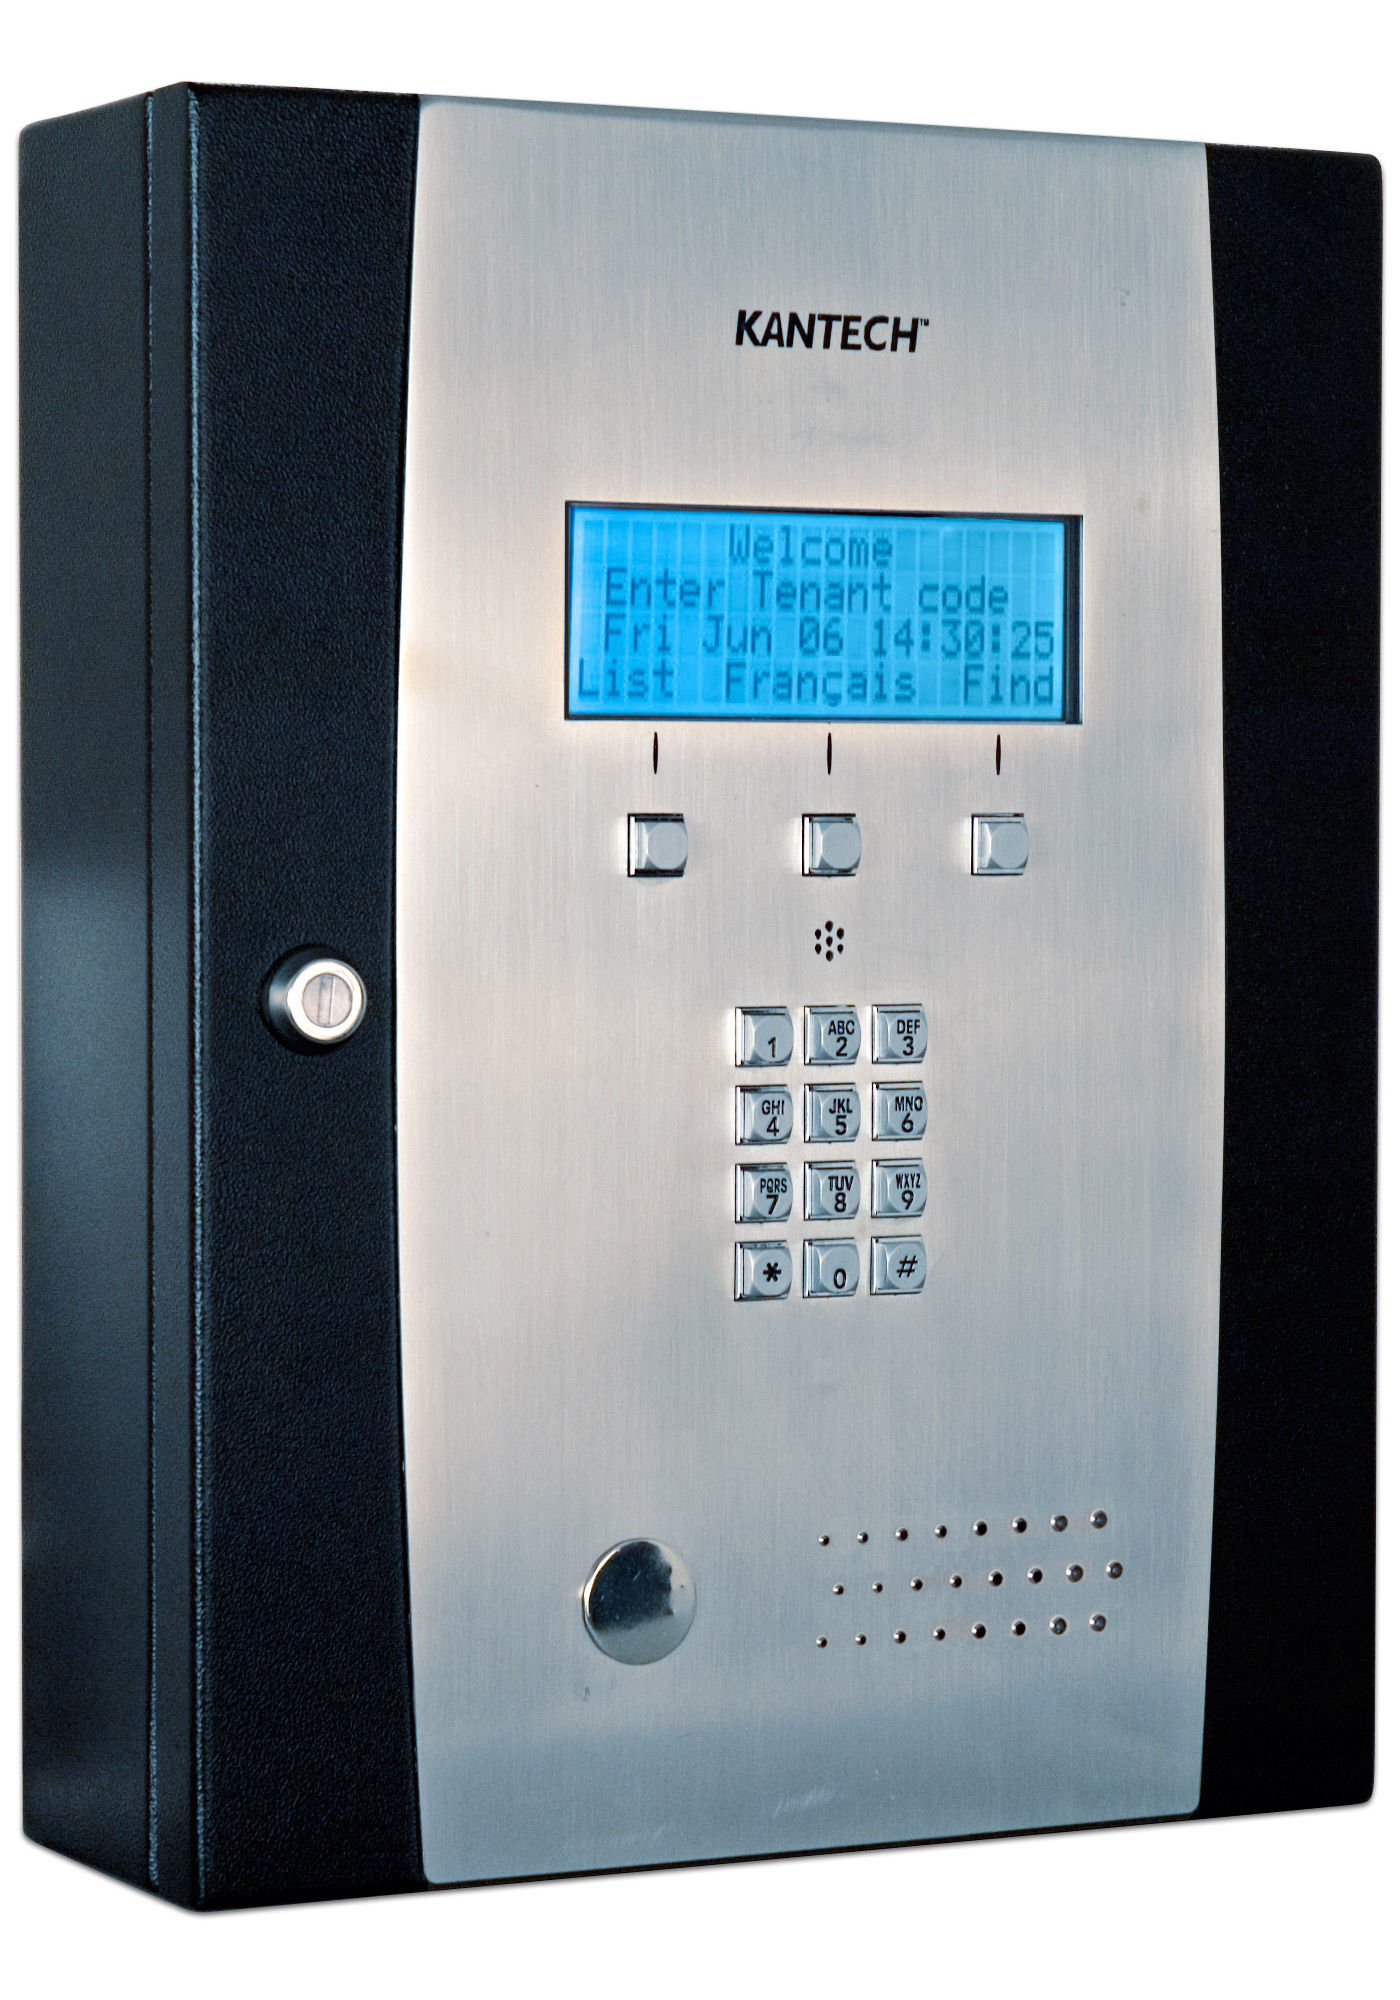 Kantech Telephone Entry System (KTES) - Right View